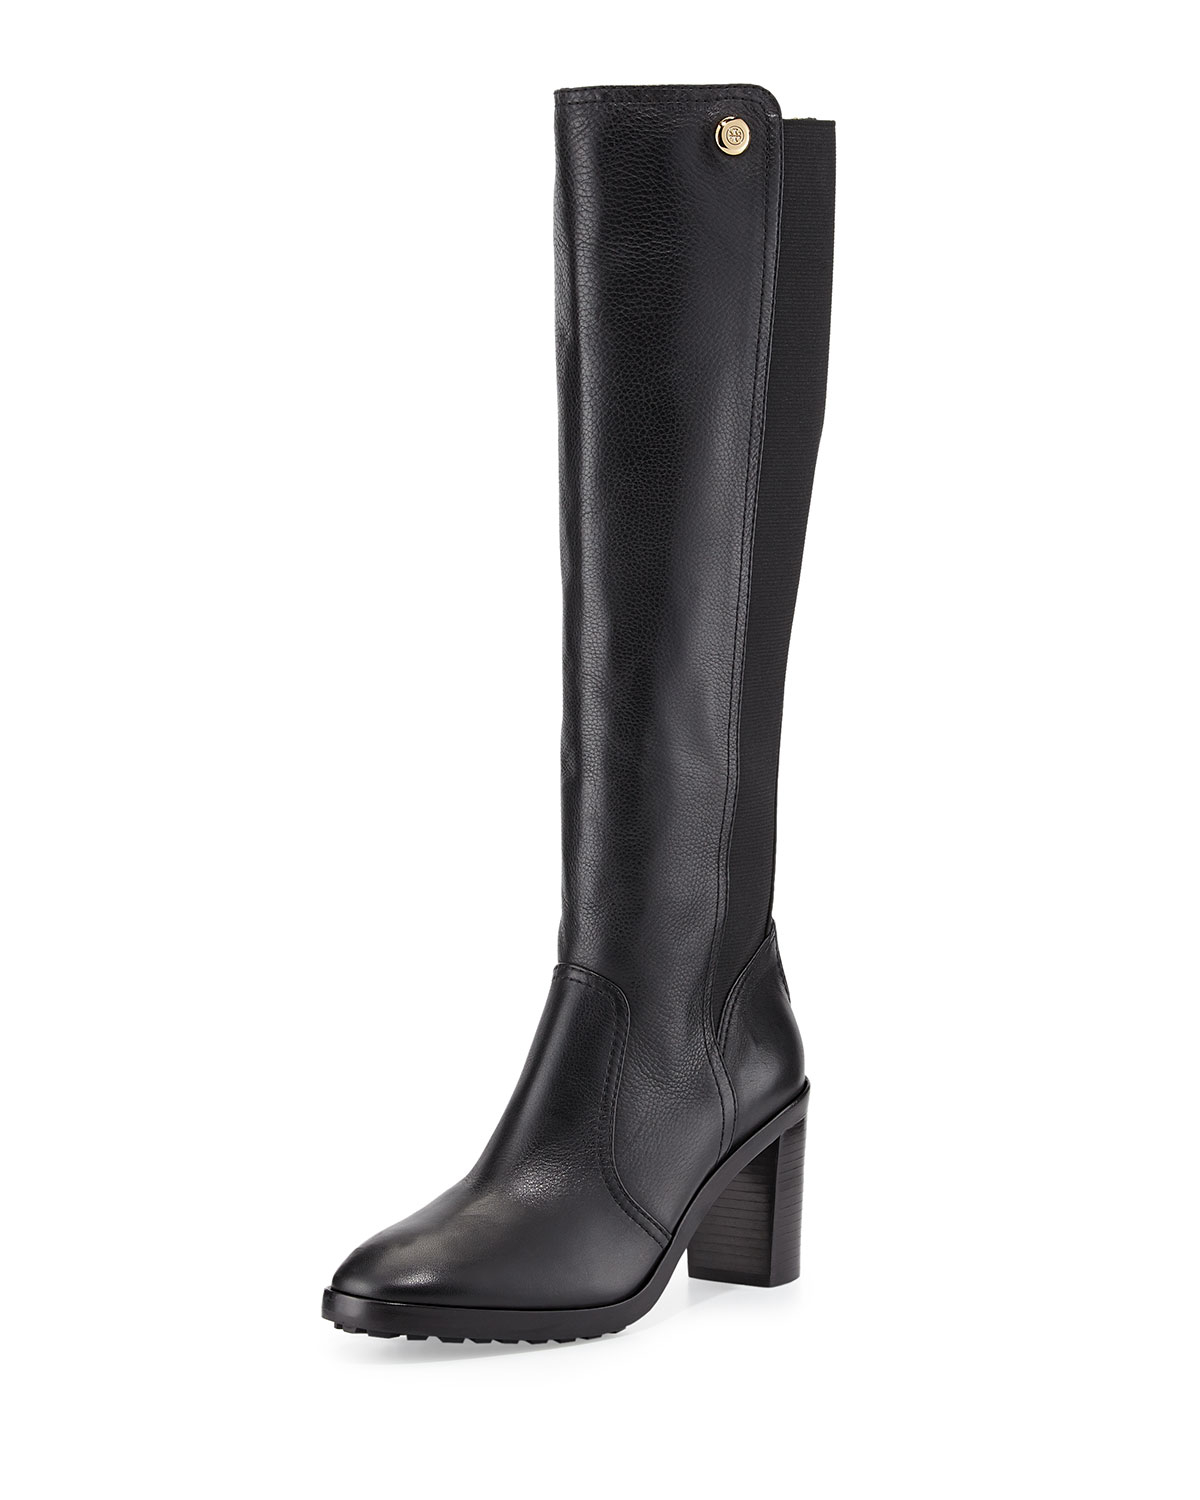 05a6bf80ddec Lyst - Tory Burch Sullivan Stretch-Back Knee Boots in Black